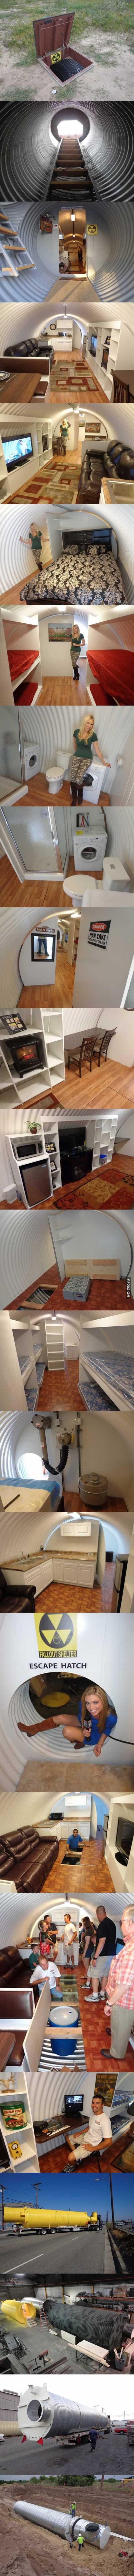 best 25 bomb shelter ideas on pinterest underground shelter